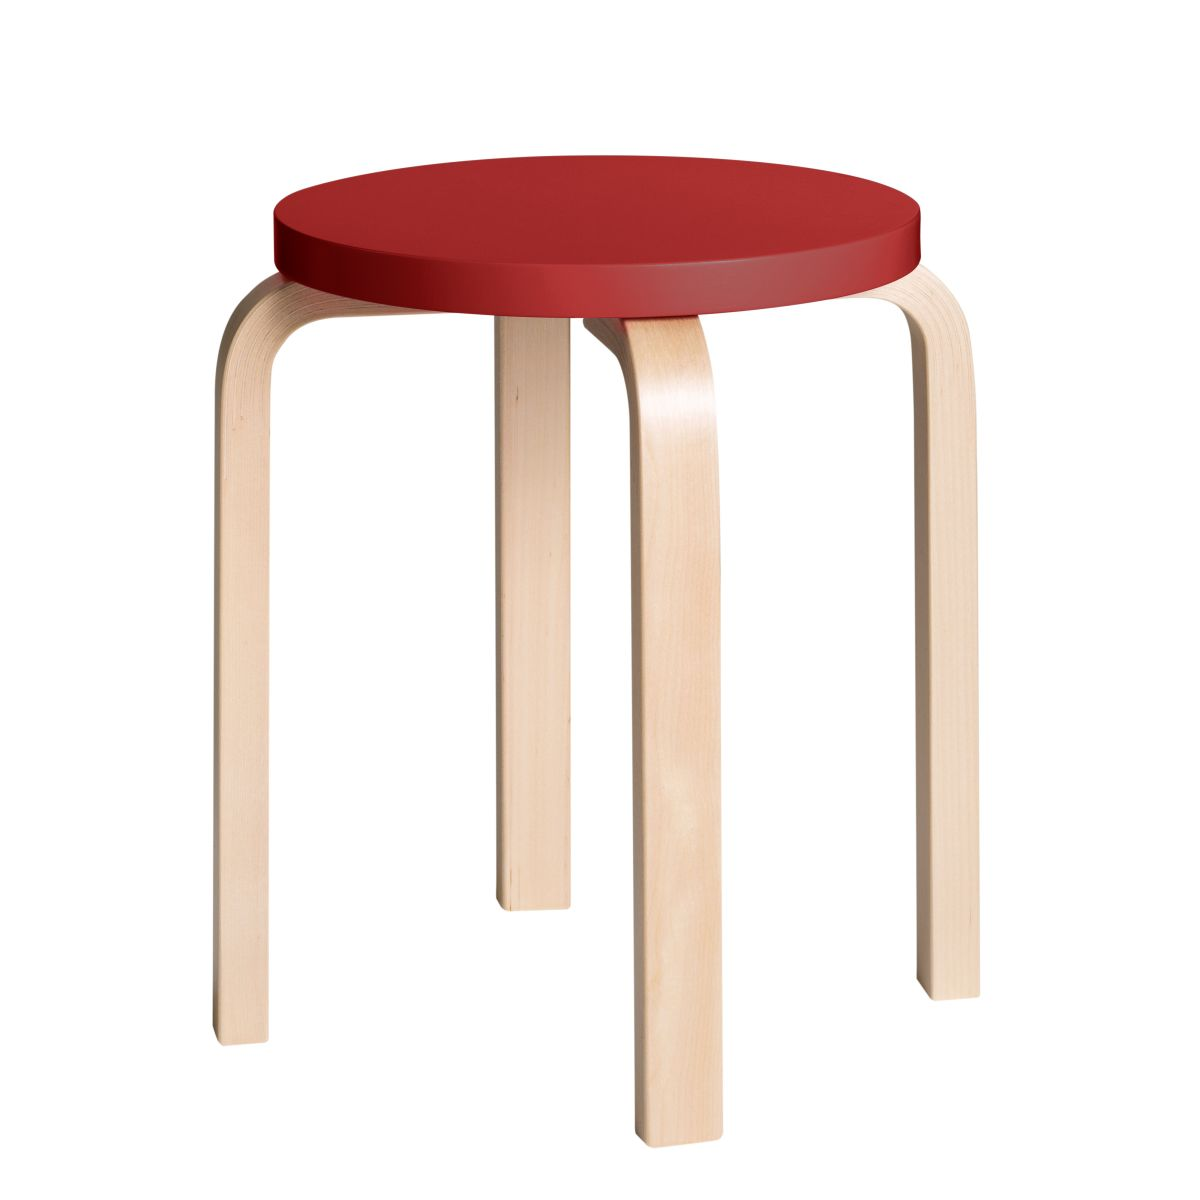 Stool E60 Clear Lacquer Top Red 2479611